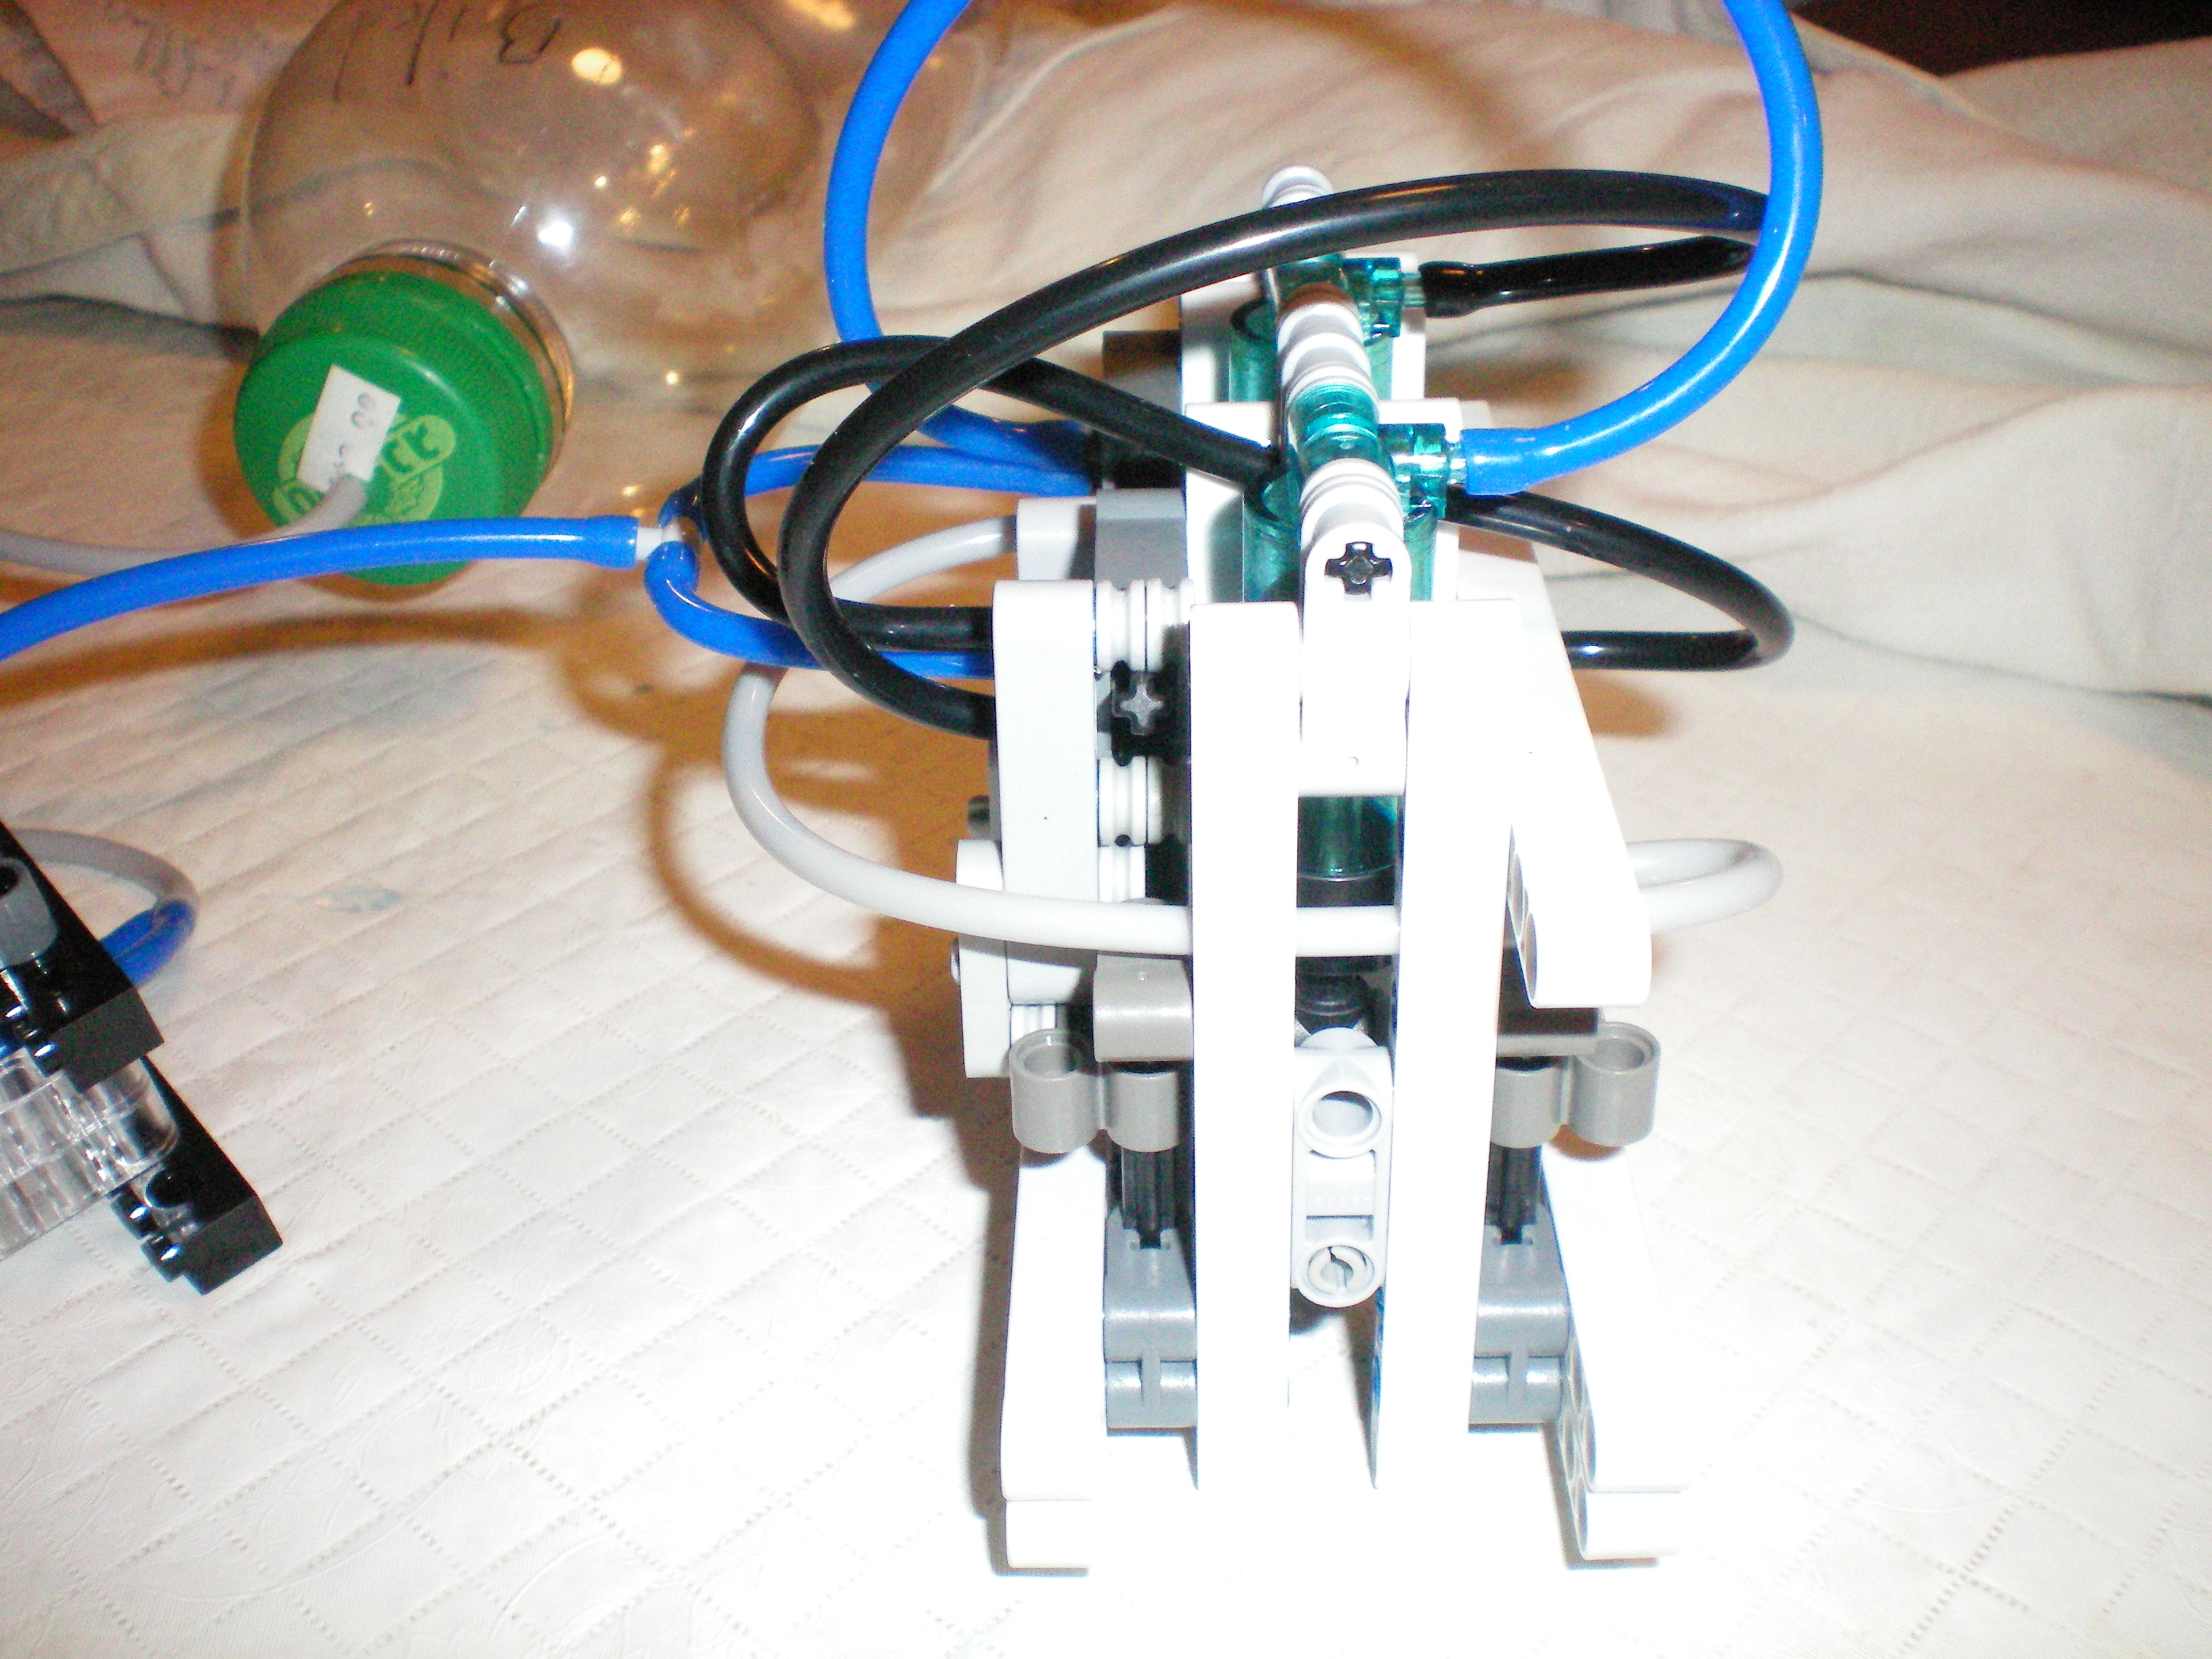 lego_inline_scotch_yoke_engine_side_view_2.jpg